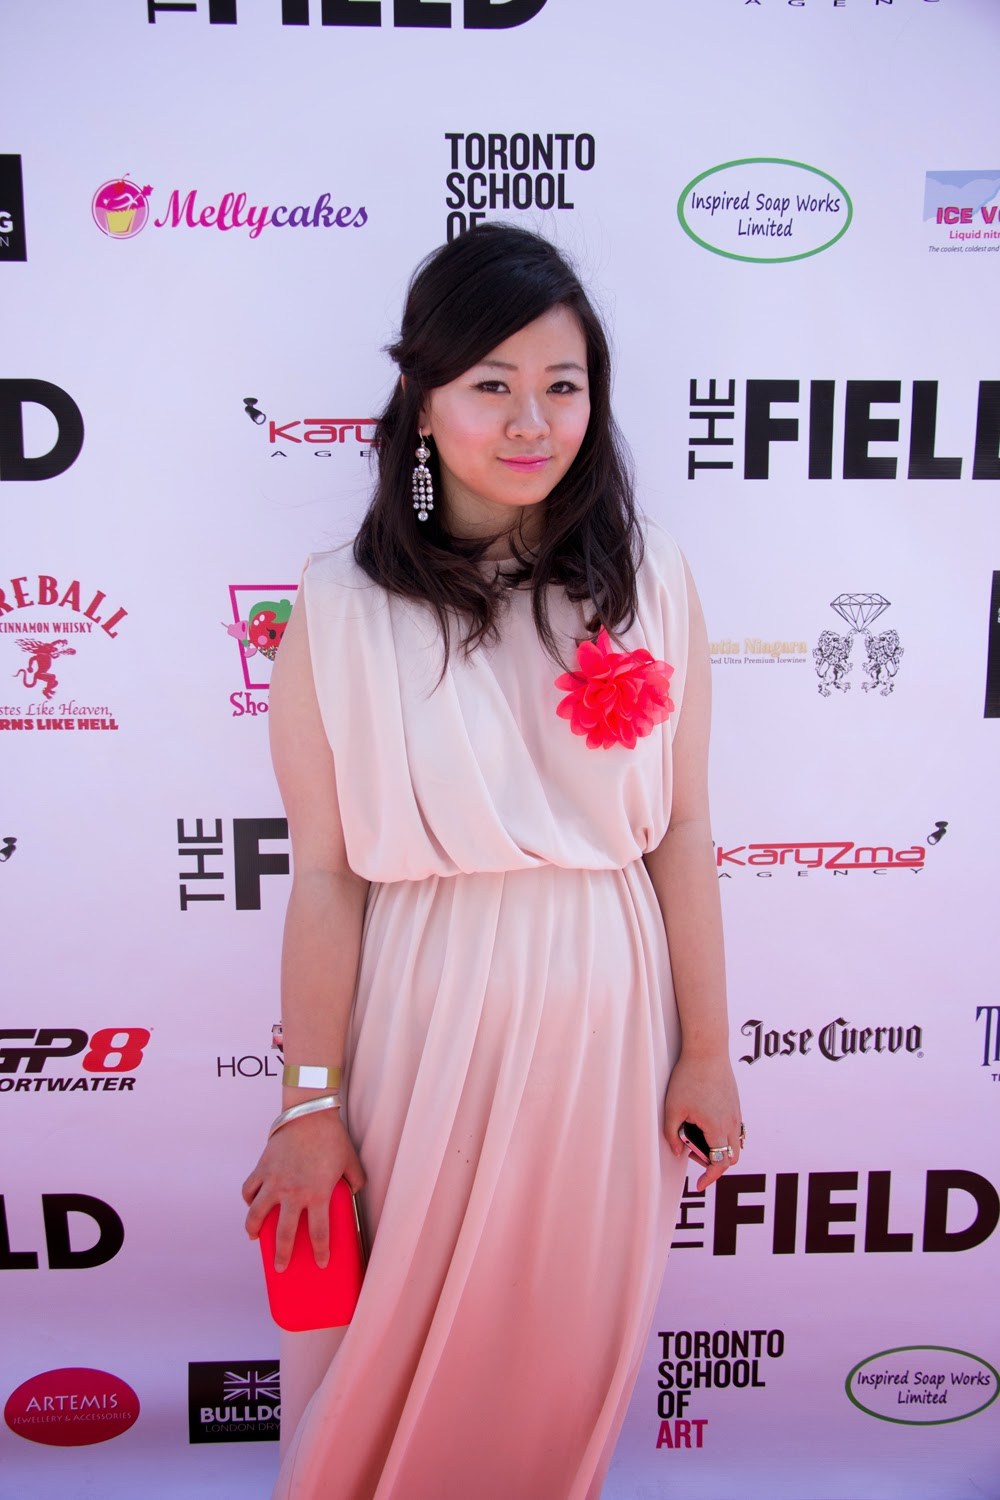 The-fields-party, much-music-video-award-2014, runway, fashion-blogger